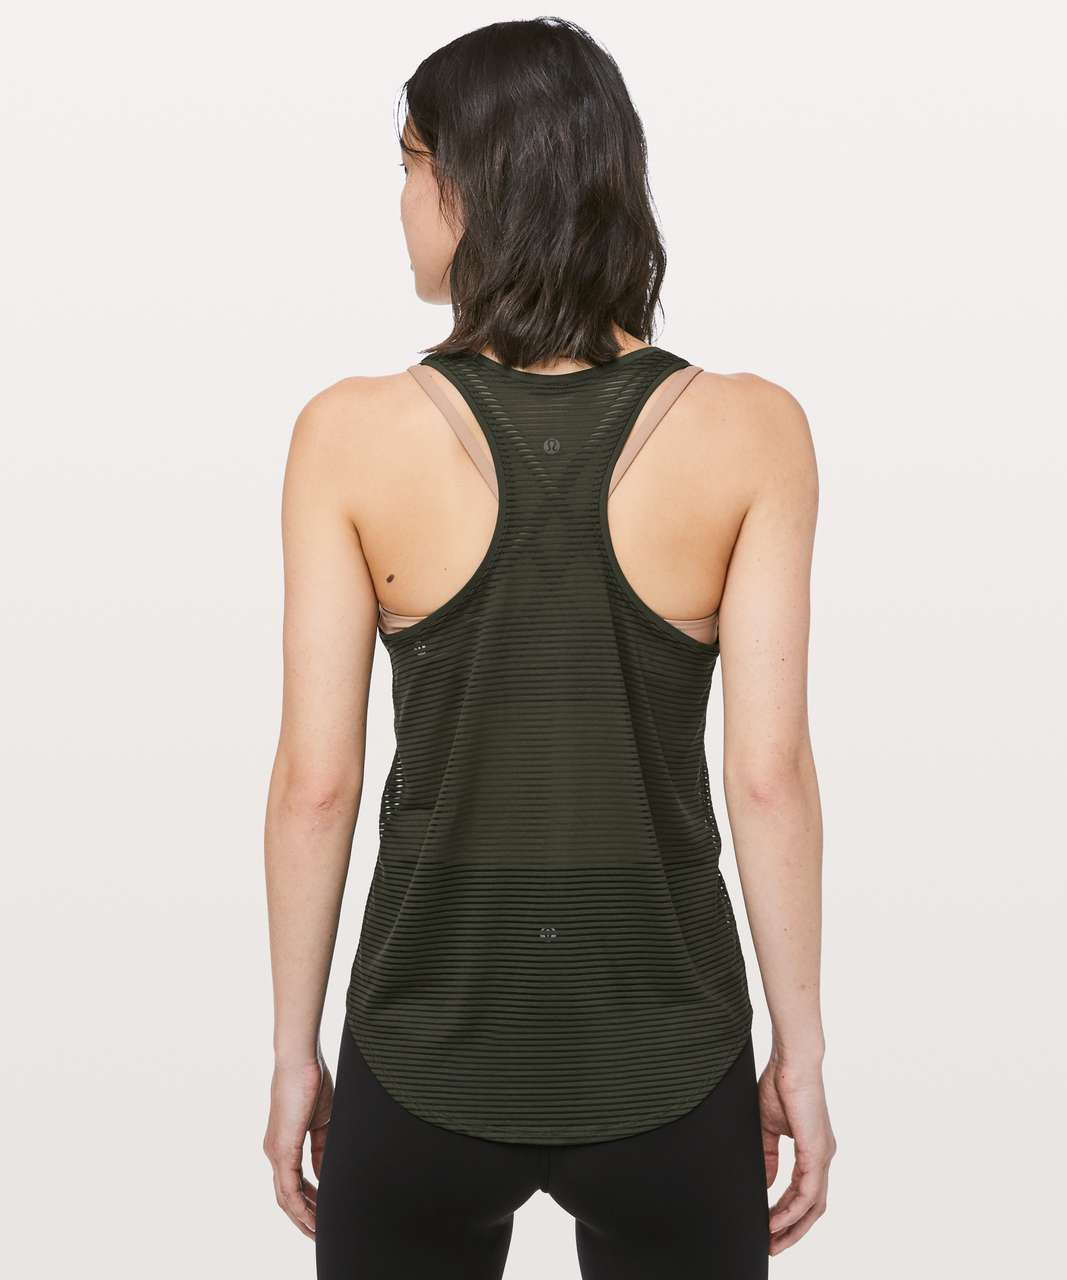 Lululemon All Love Tank *Striped Mesh - Dark Olive